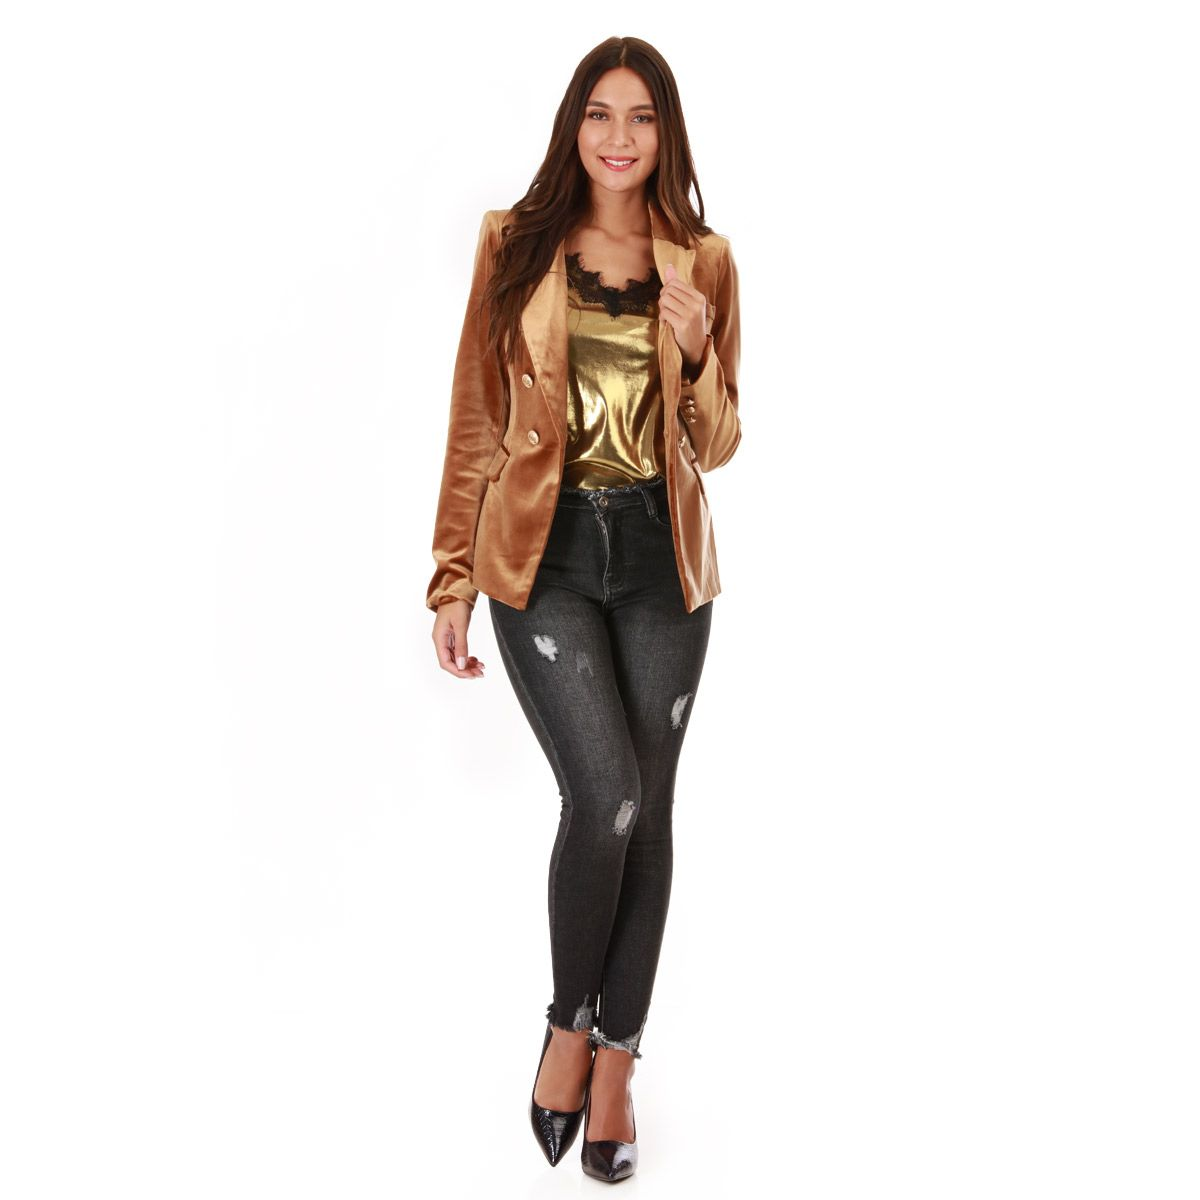 Veste en velours bronze style officier